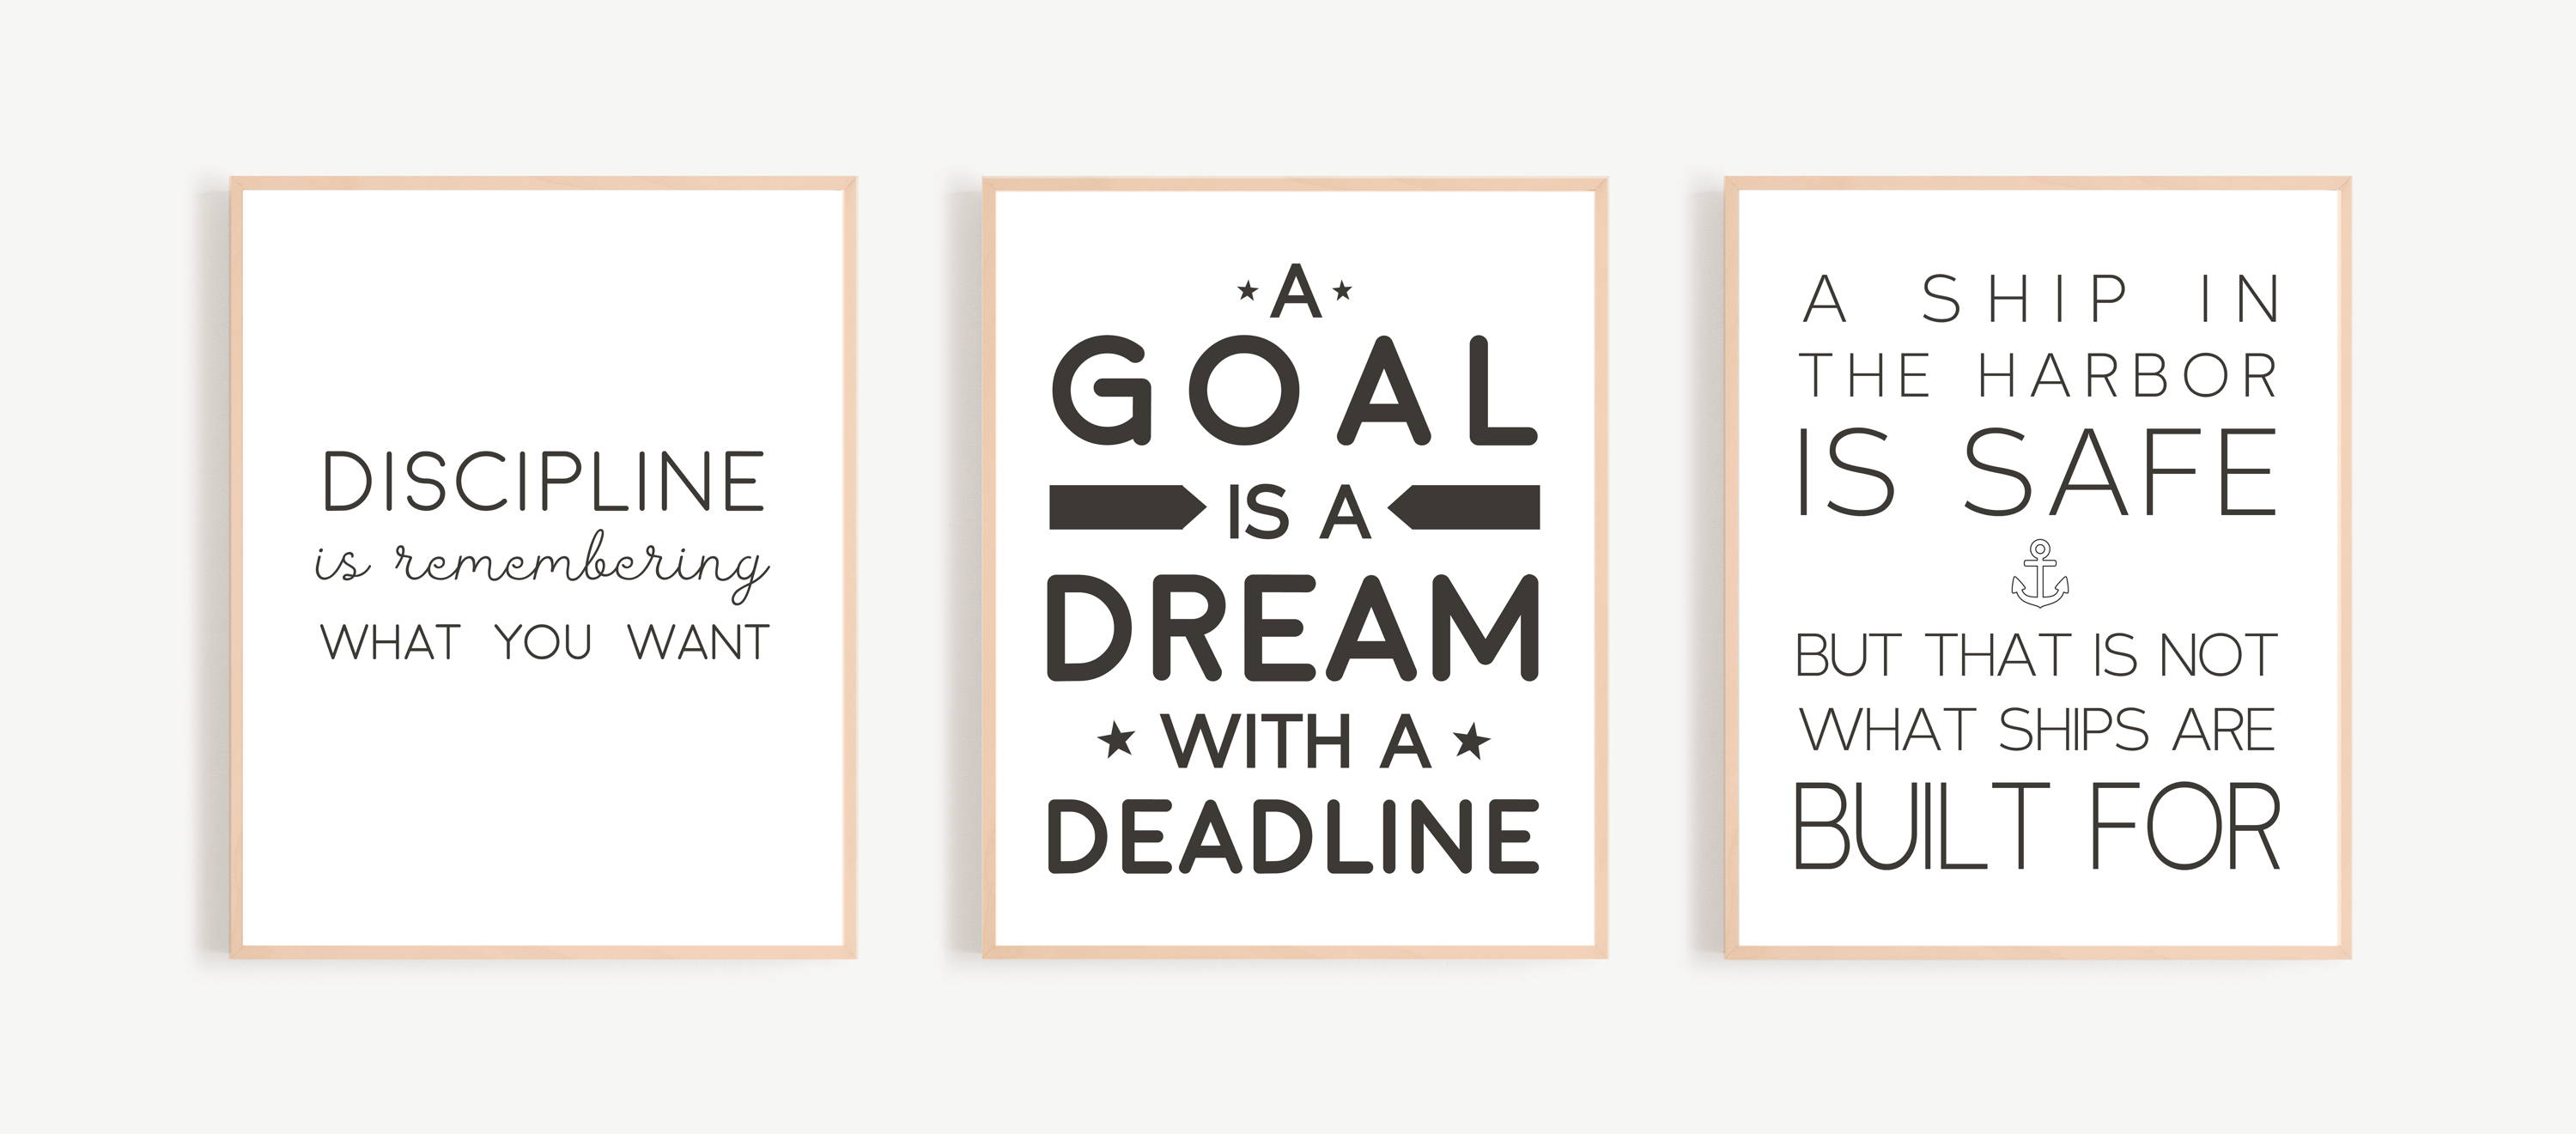 A Goal is A Dream with a deadline Inspirational Wall Art